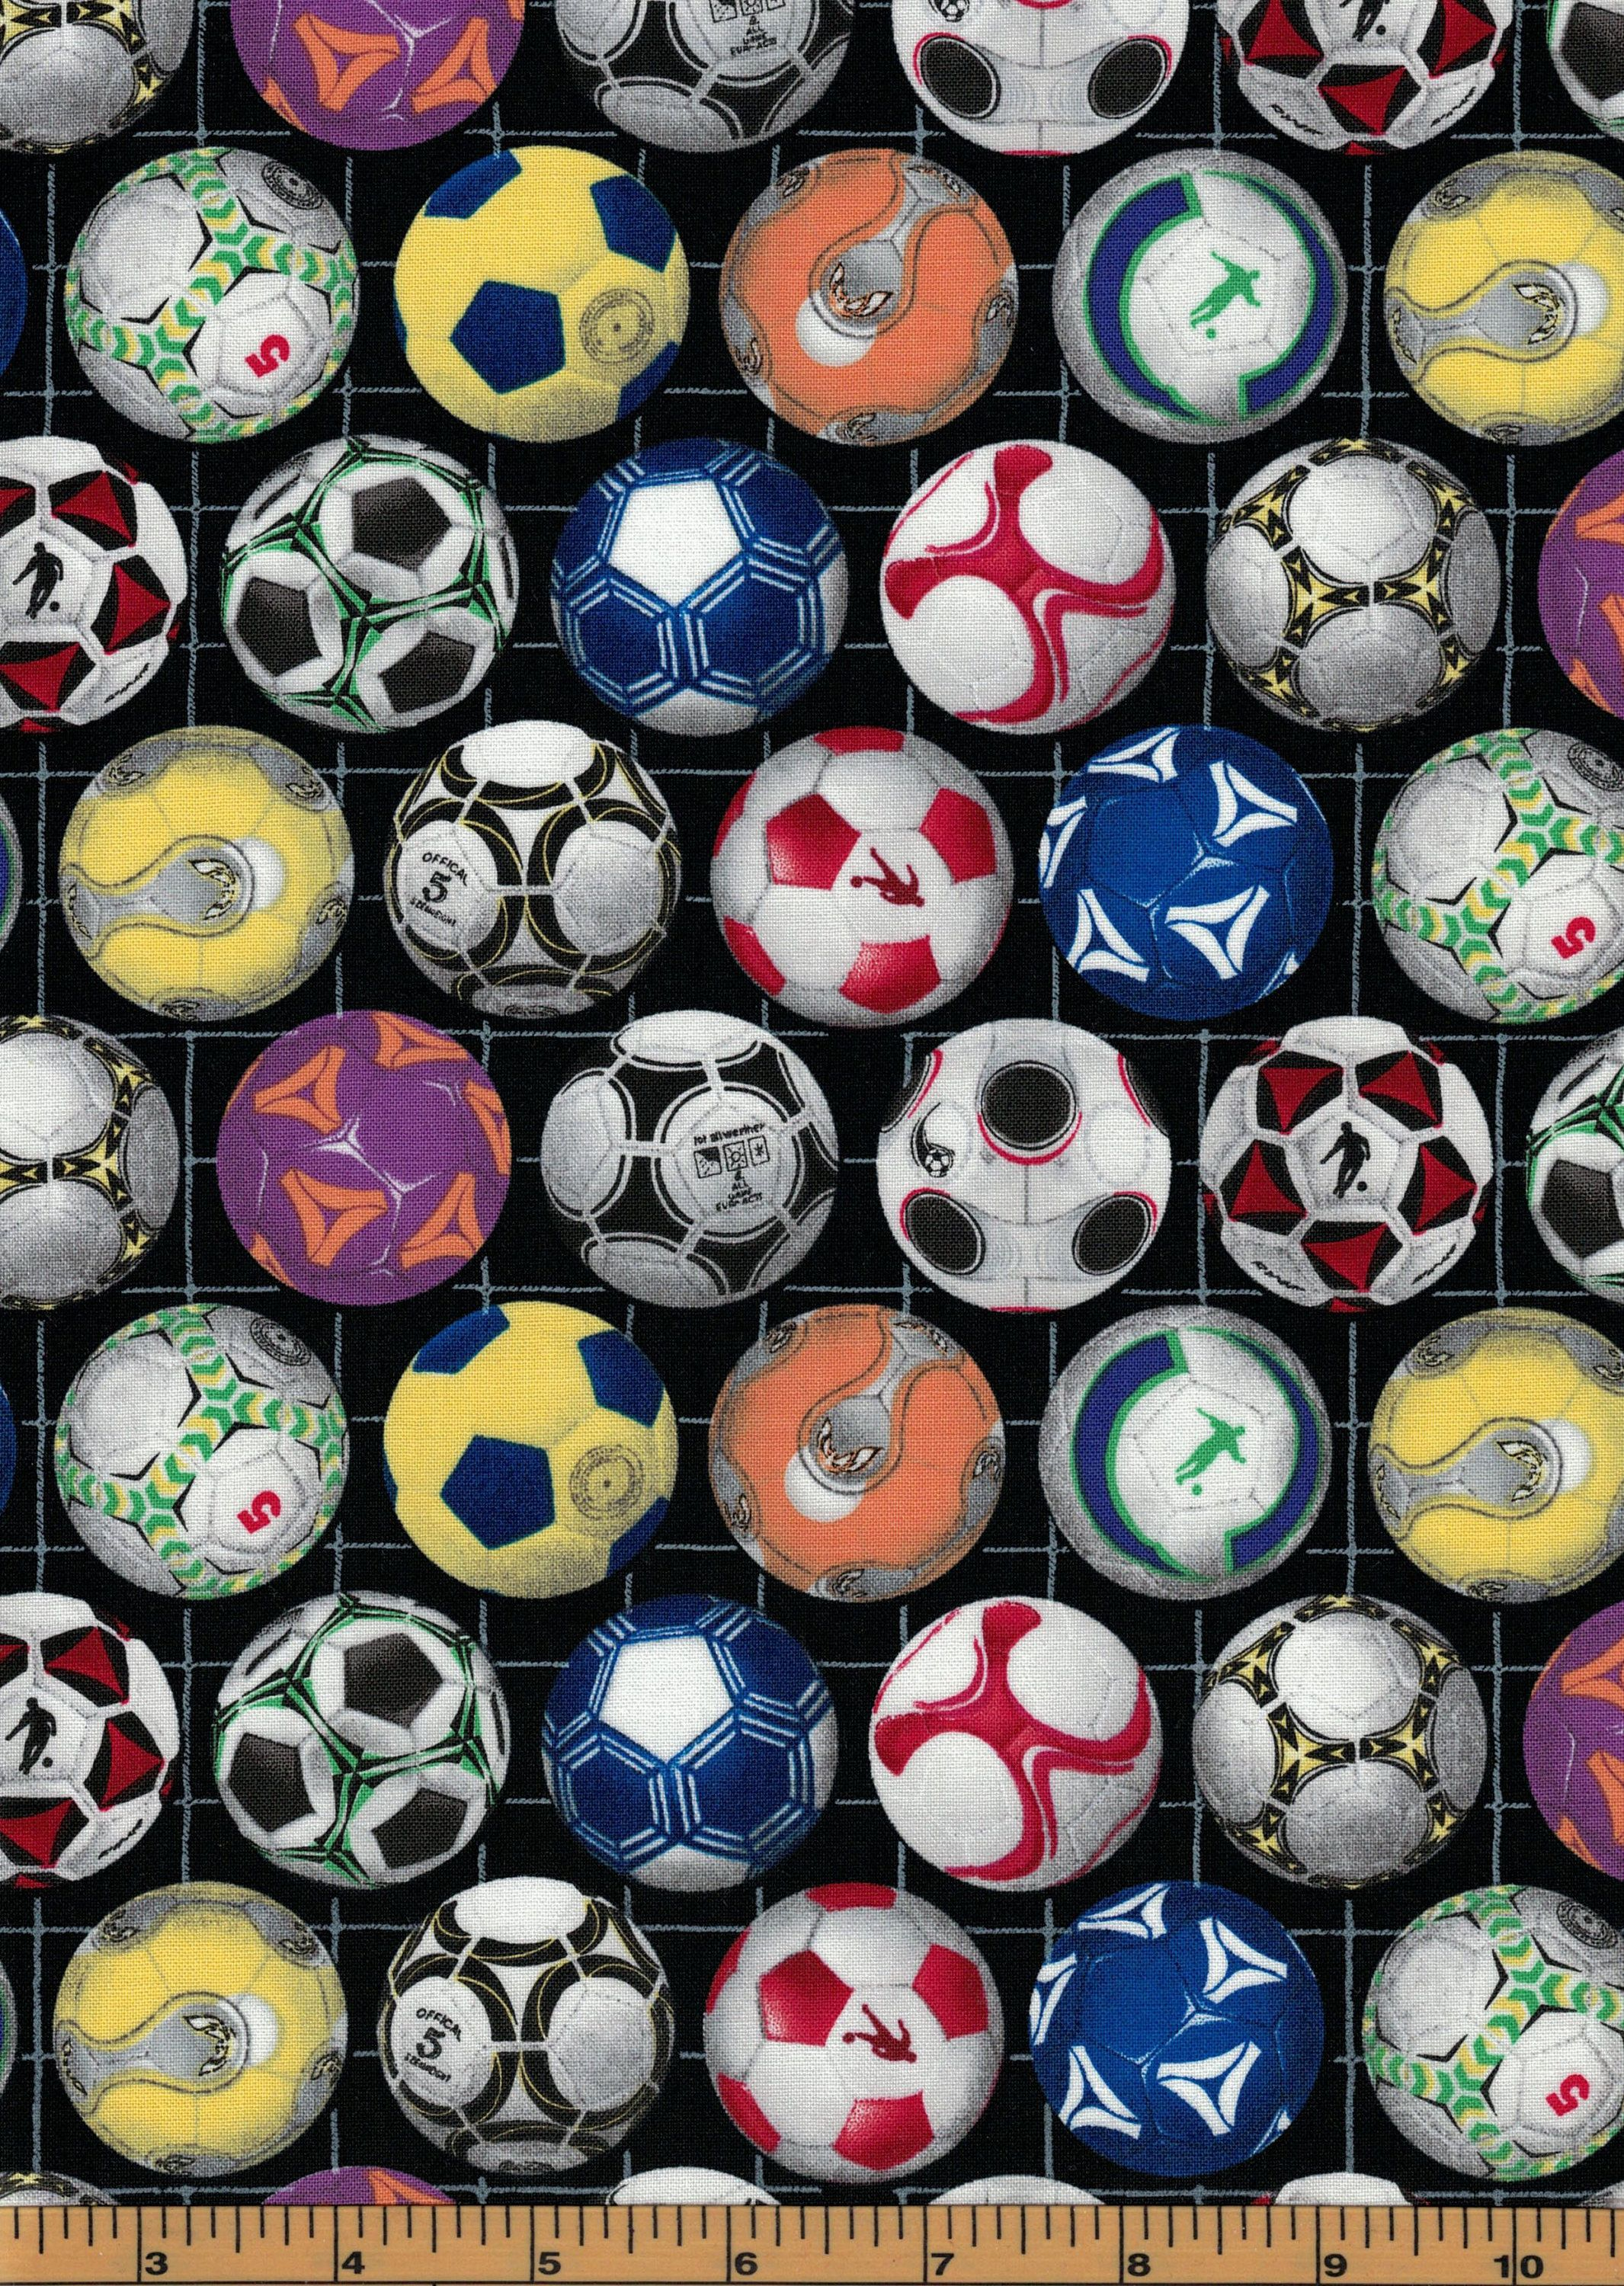 7e1e56d07 Multicolor Soccer Balls on a Black Background - Soccer Fabric - Elizabeth's  Studio Fabrics- 100% Cotton Fabric by QuiltsOnTheFly on Etsy